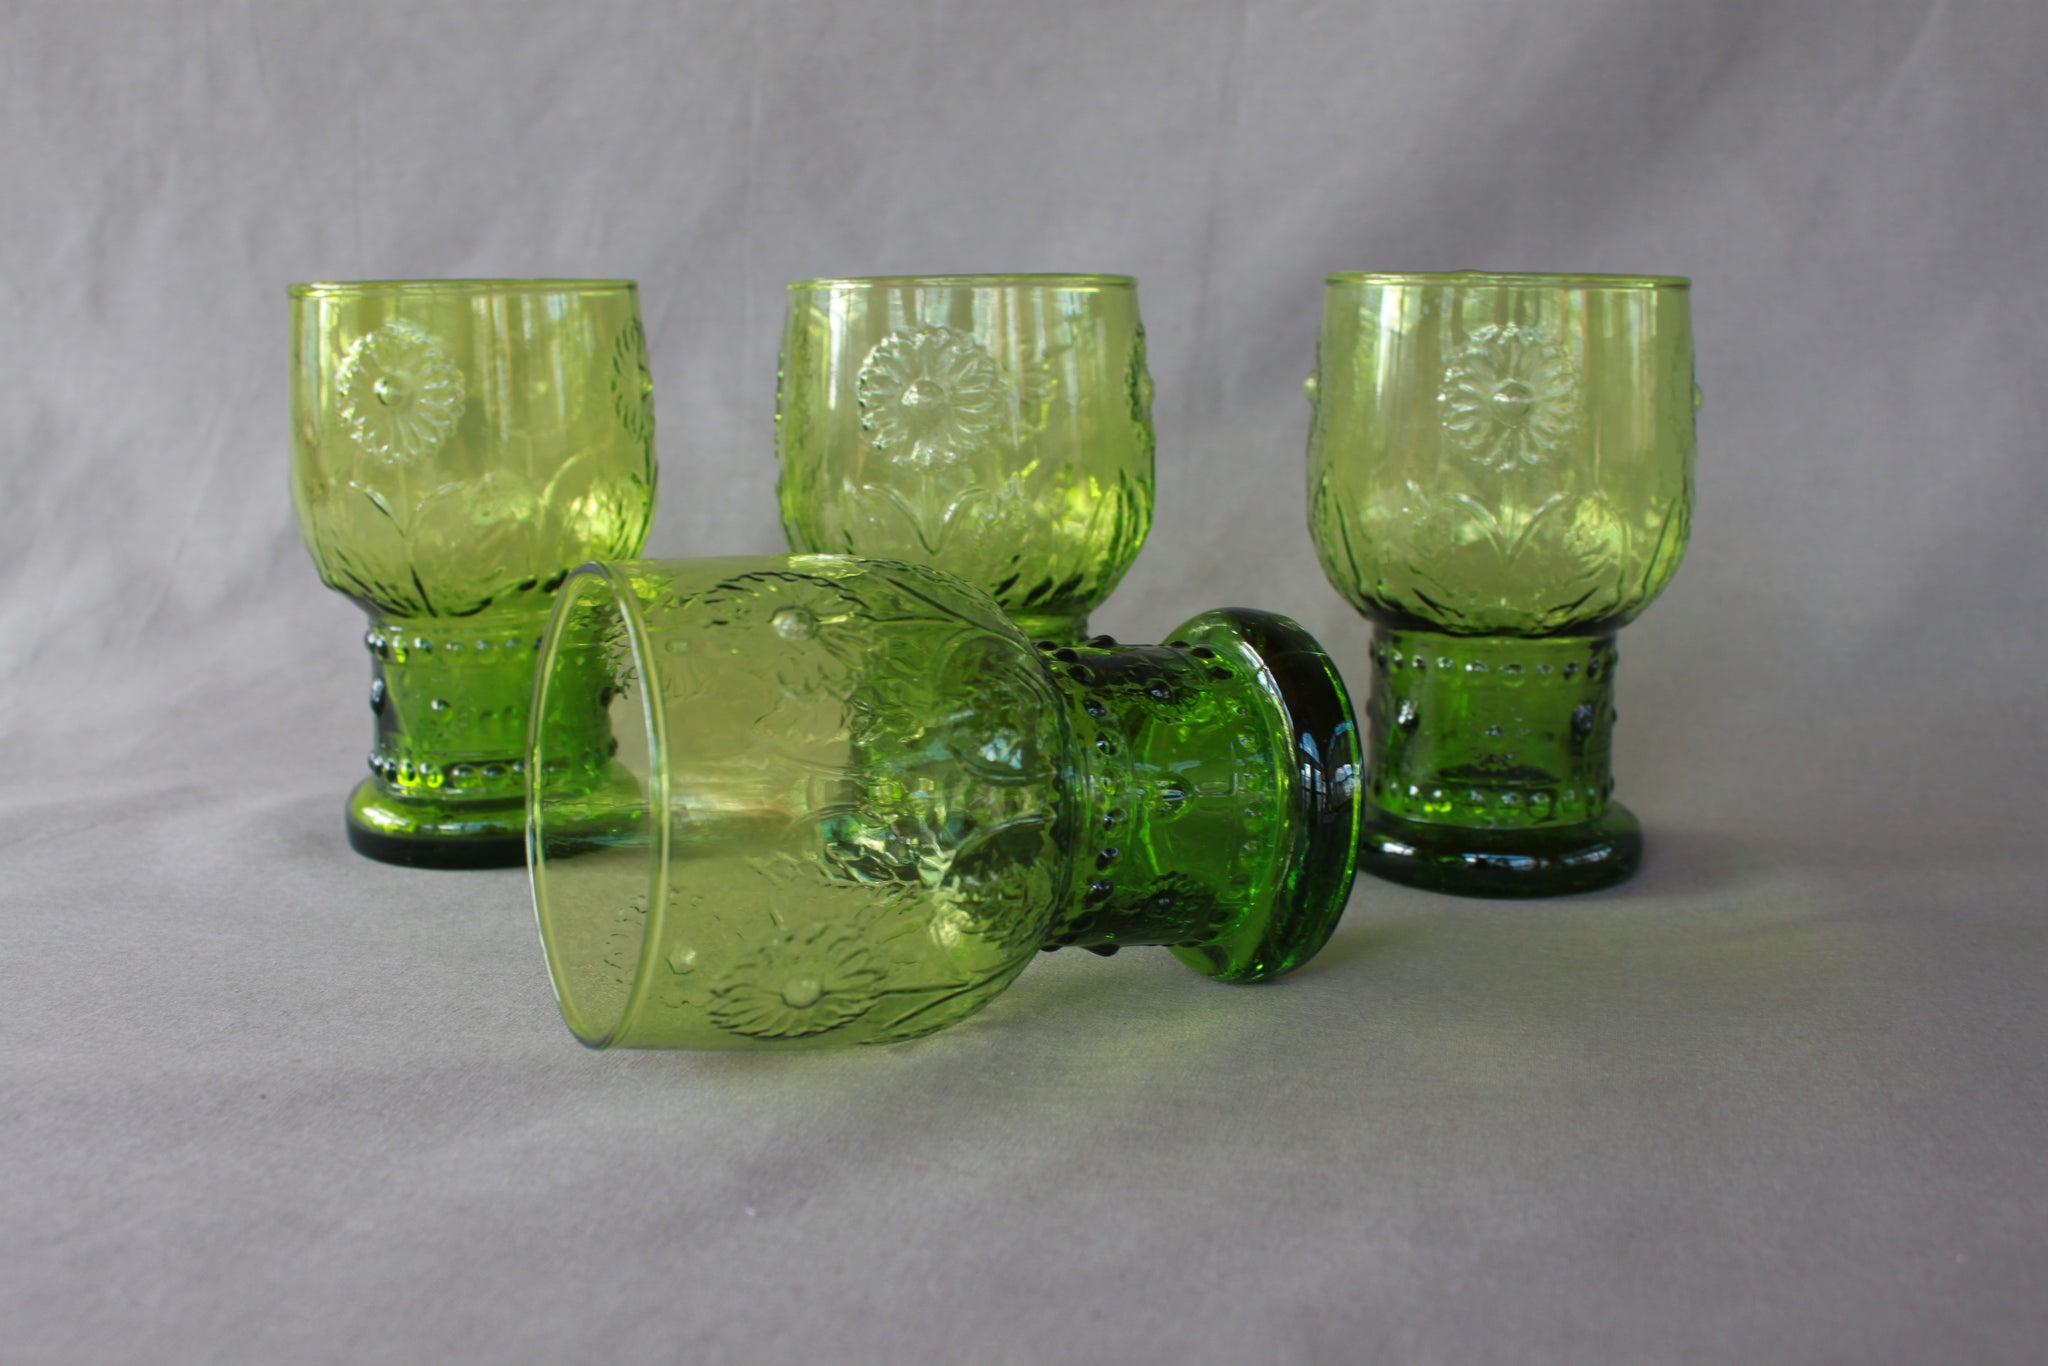 Vintage 70s Avocado Green Juice Tumblers (1 set)